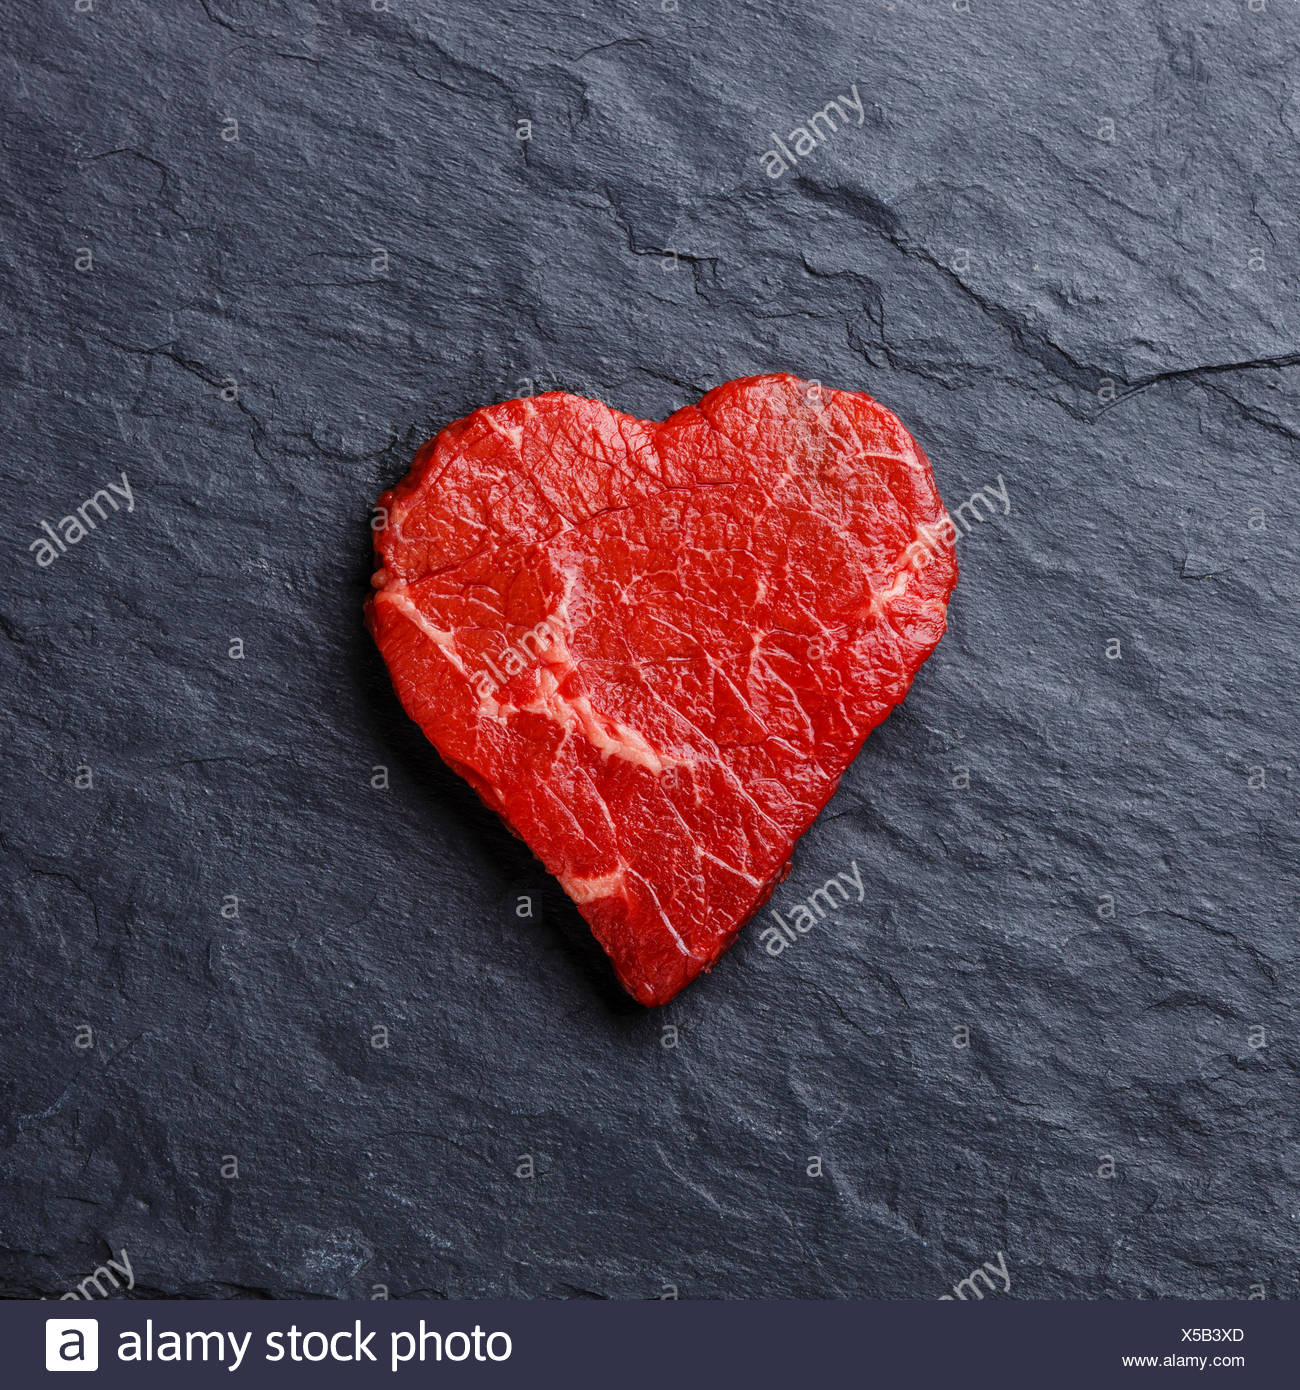 Heart shape Raw fresh meat on dark stone slate background - Stock Image